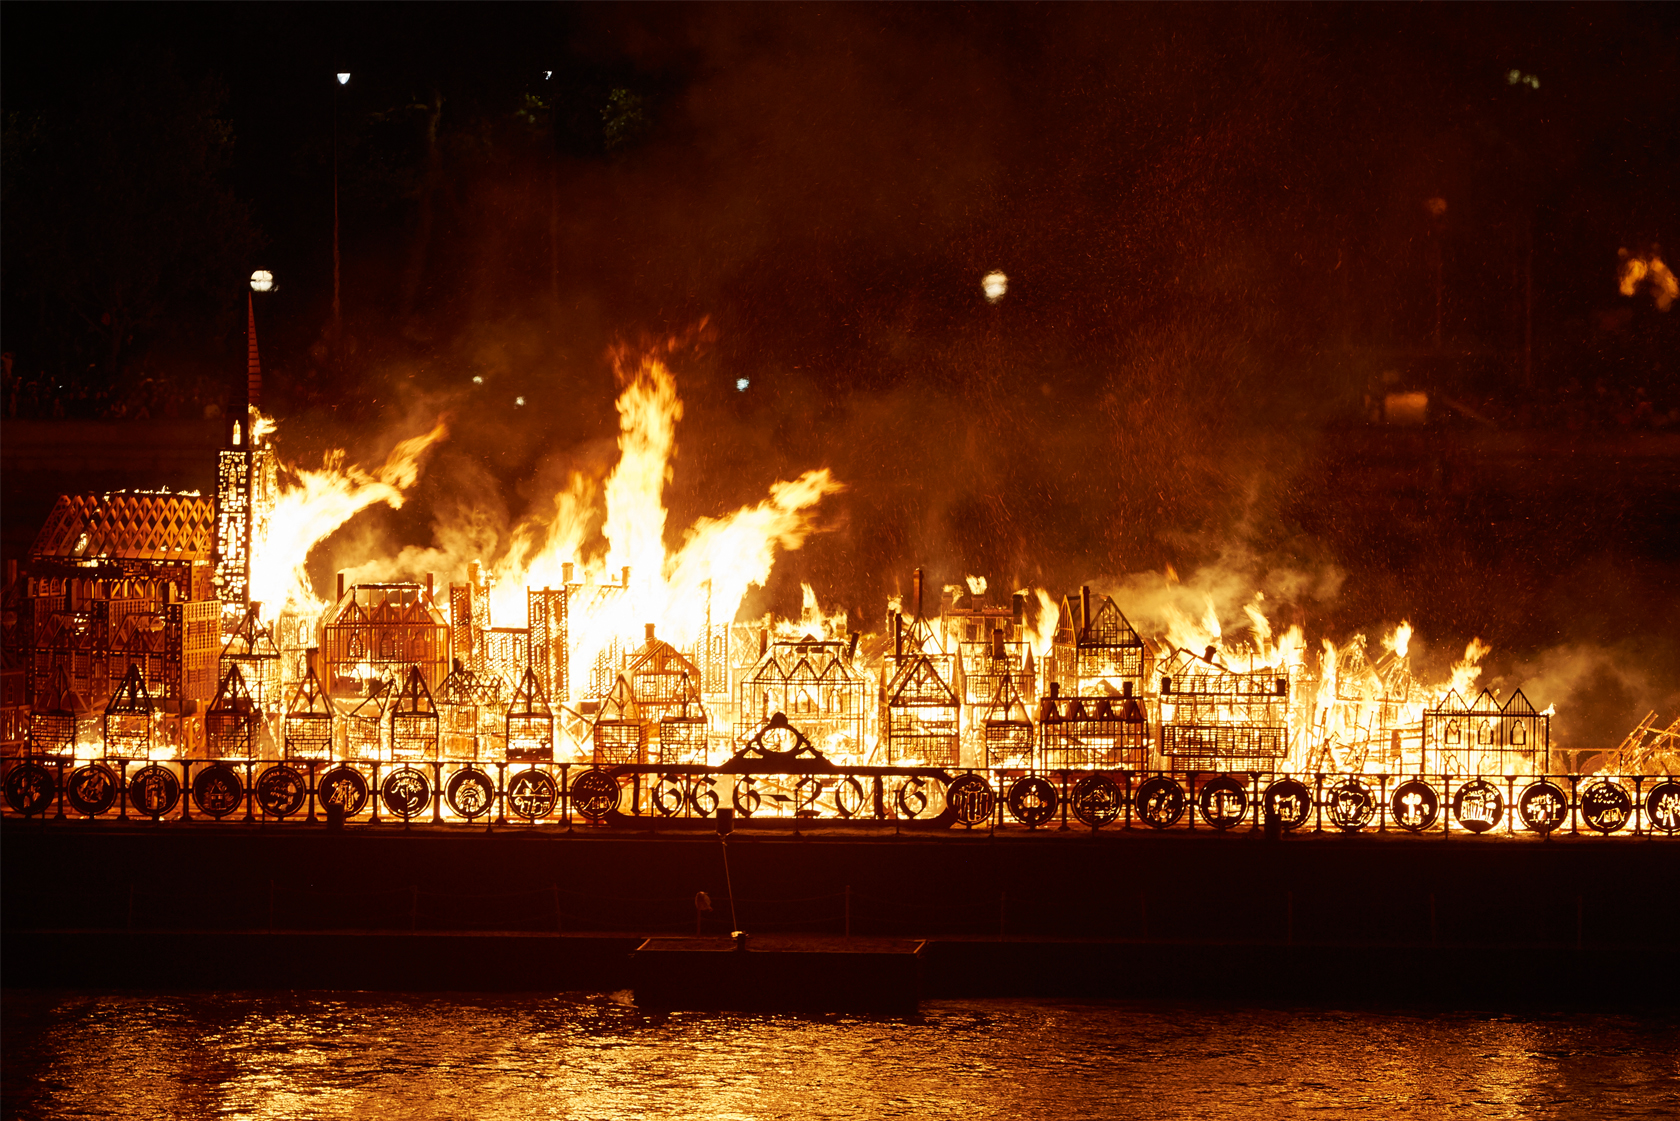 London 1666 wooden structure engulfed in flames